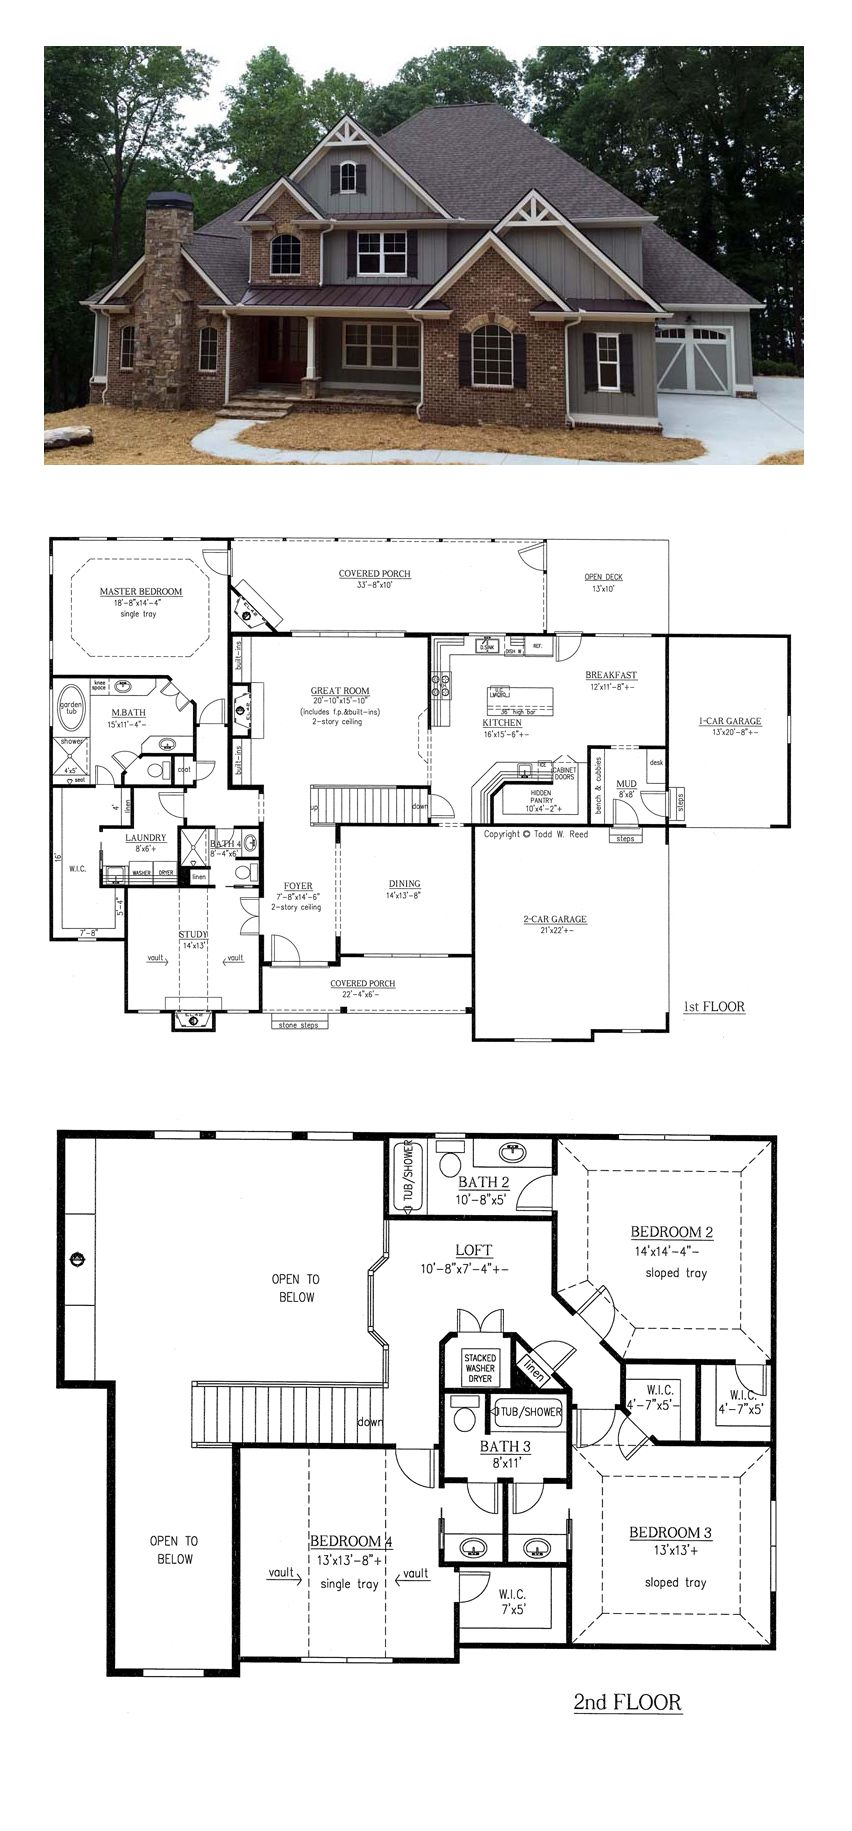 French country house plan 50263 total living area 3290 for French country house floor plans